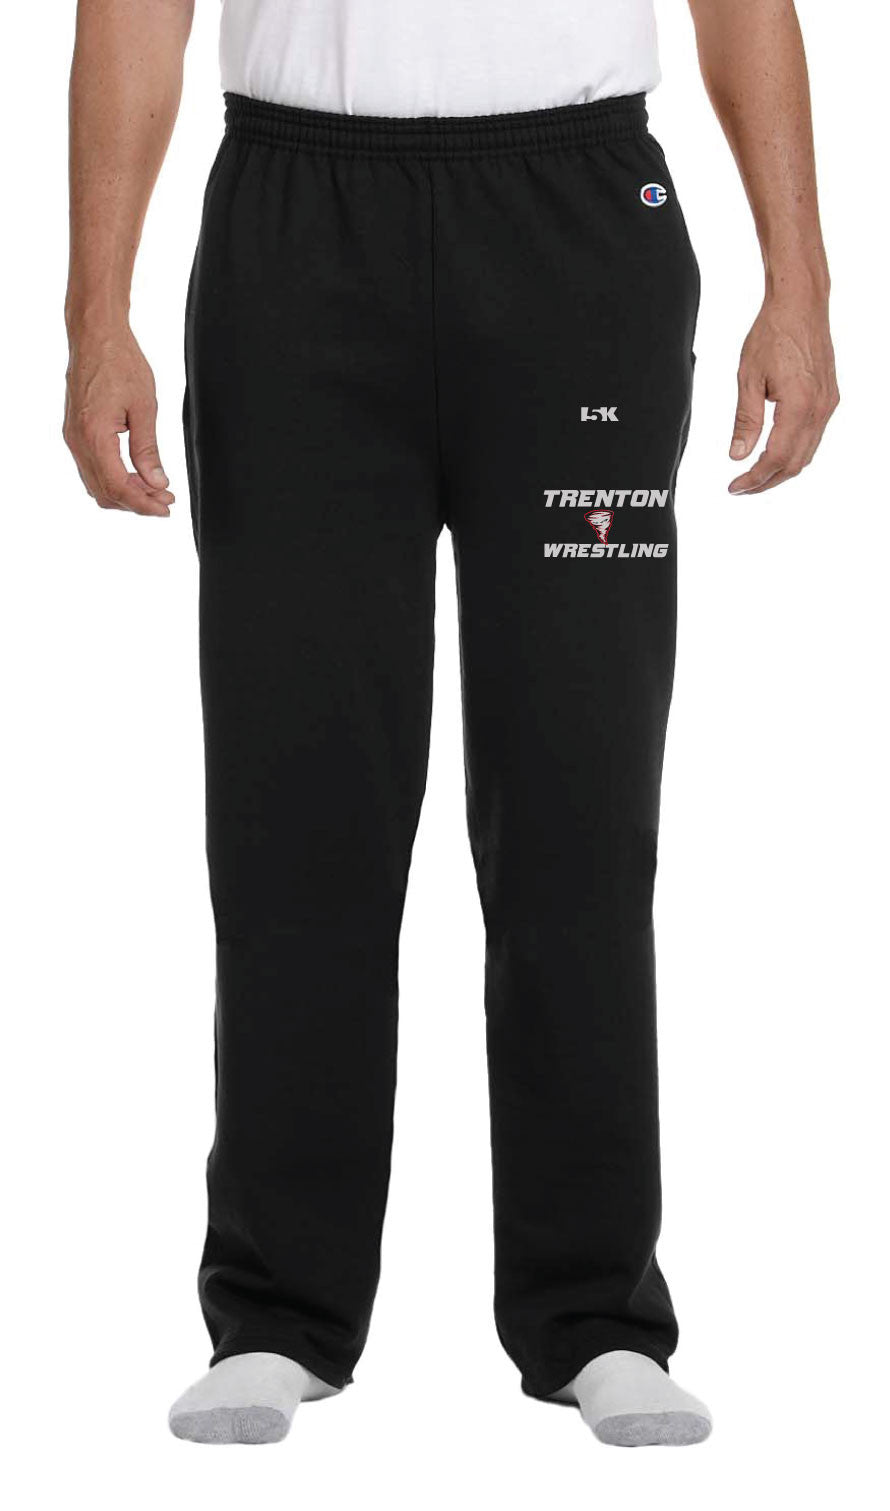 Trenton Wrestling Sweatpants